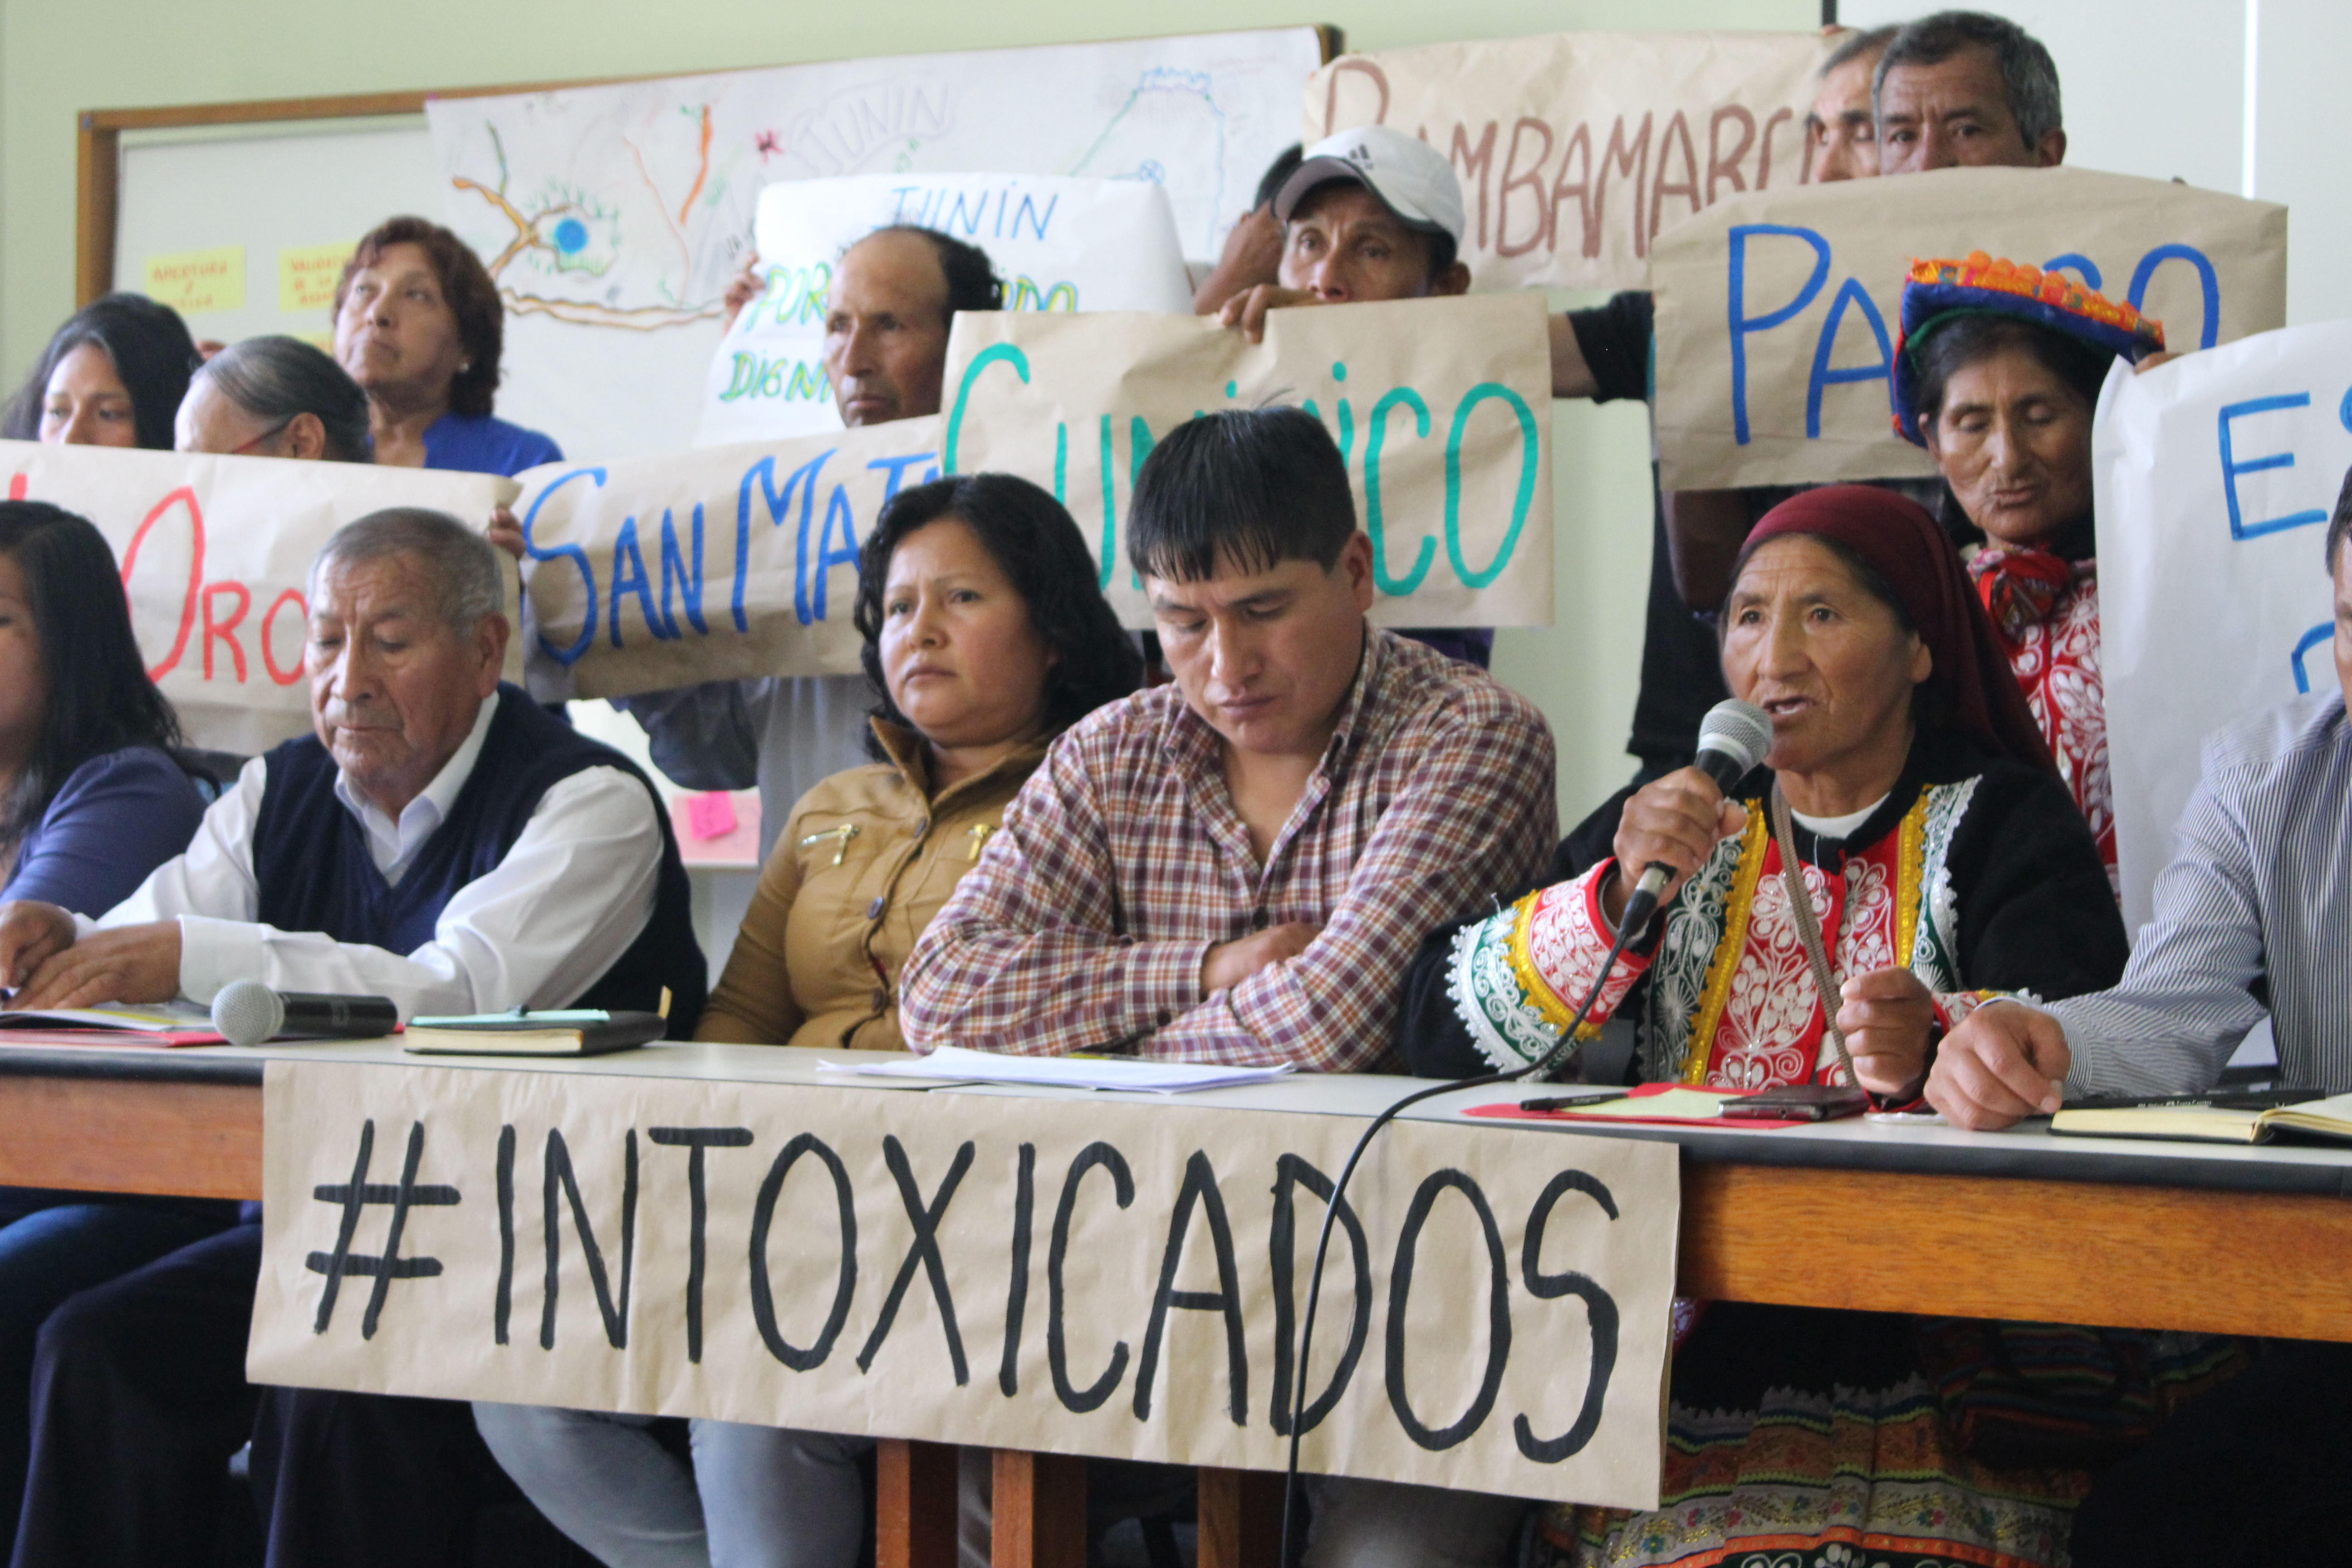 Melchora Surco speaking at the inaugural press conference of the National Platform of People Affected by Toxic Metals, where they presented their demands for the State for the first time (Amnesty International, 2018)